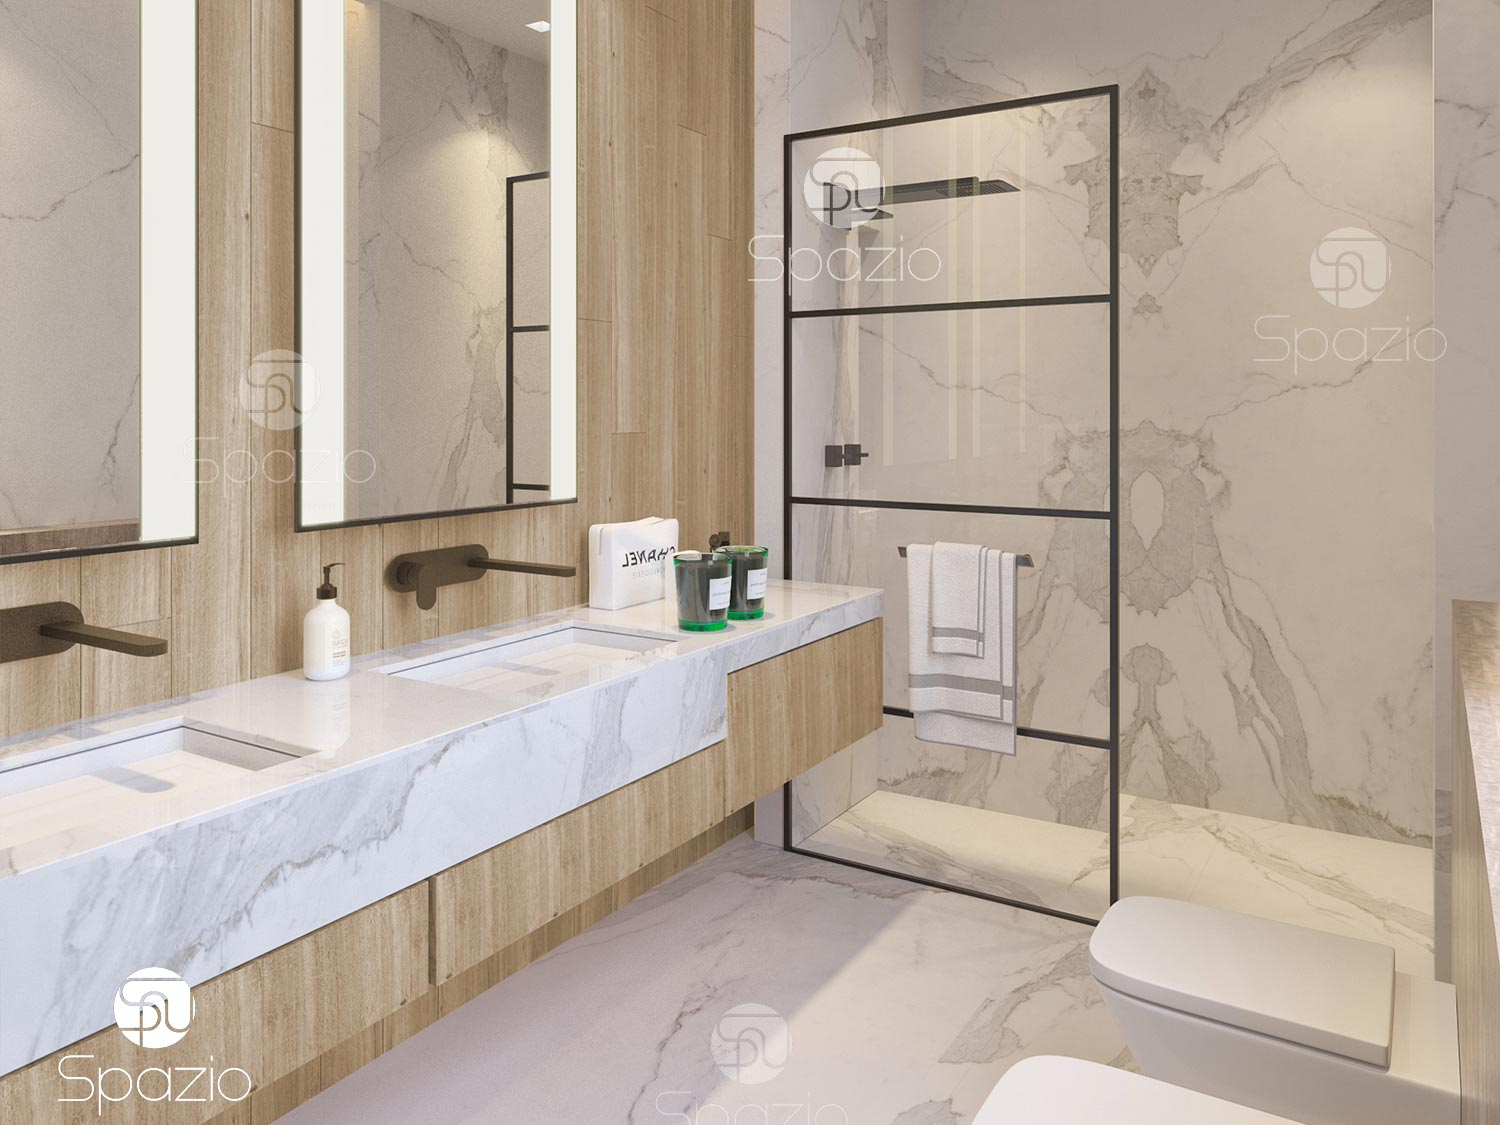 Wooden finish bathroom with beautiful carrara marble